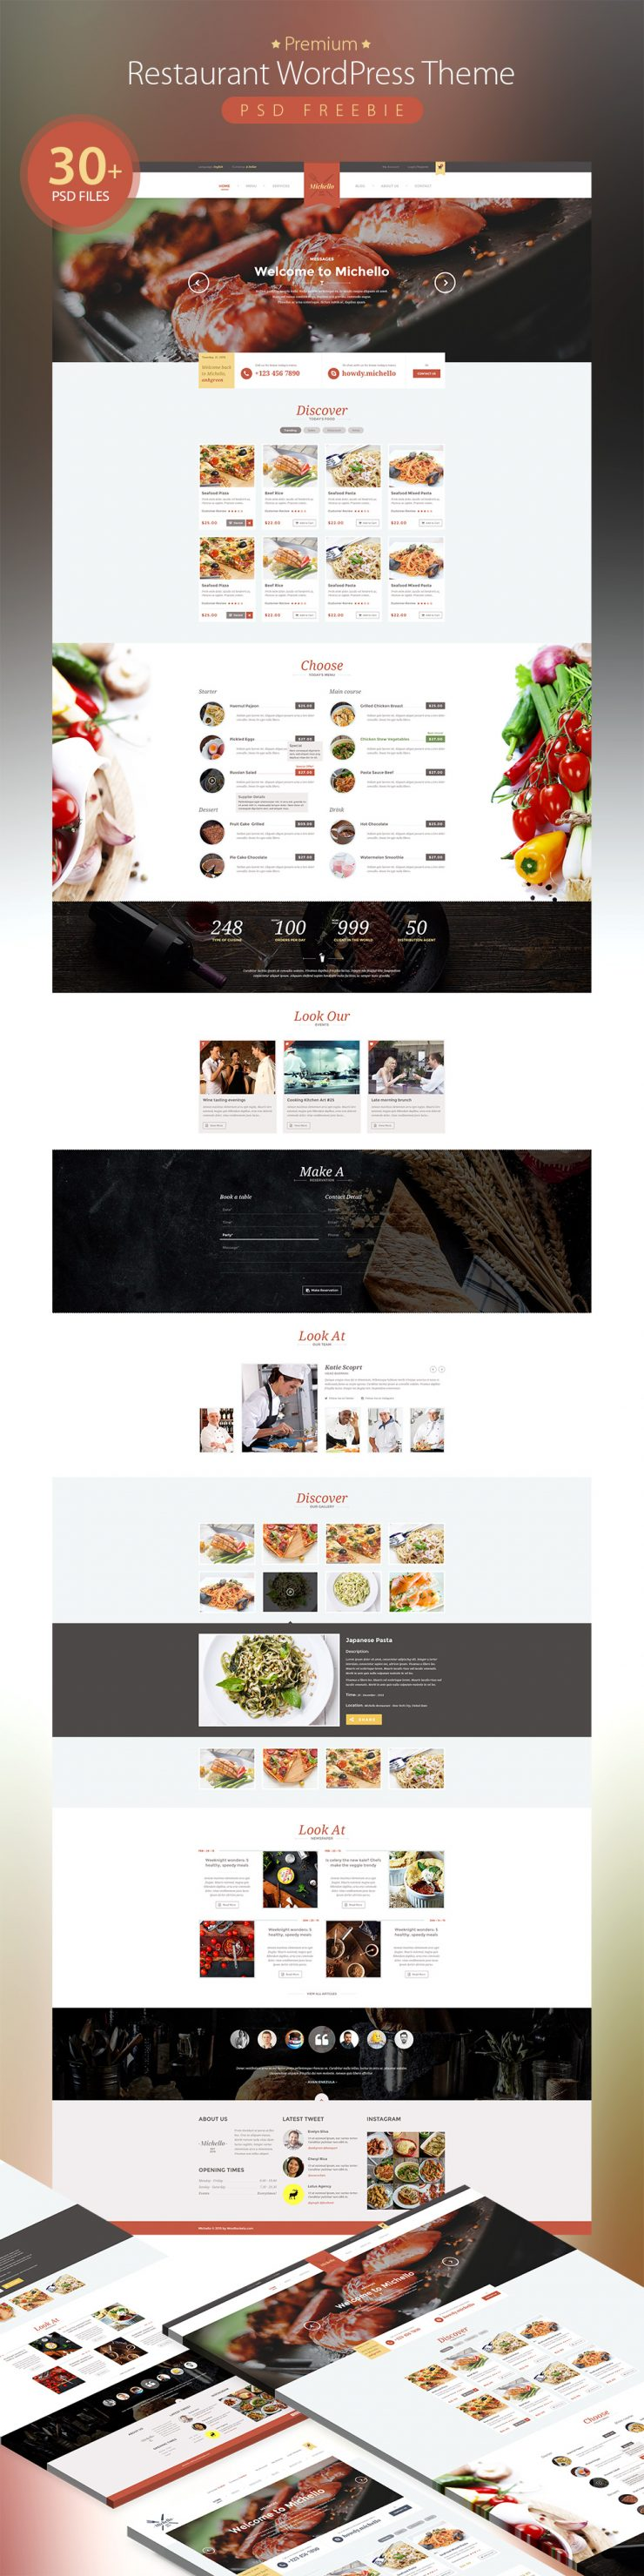 Premium Restaurant WordPress Theme PSD Freebie www wptheme Wordpress woocommerce Website Template Website Layout Website webpage Web Template Web Resources web page Web Layout Web Interface Web Elements Web Design Web Vintage User Interface unique Under Construction Page UI Theme Testimonial Template take away Stylish Shopping Shop Search Restaurant Resources Quality Psd Templates PSD Sources PSD Set psd resources PSD images psd free download psd free PSD file psd elements psd download PSD Progress Bar Pricing Table Premium Popup Photoshop pack original Online Newsletter Popup Newsletter new Modern Layered PSDs Layered PSD home delivery Graphics full website Fresh freemium Freebies Free Resources Free PSD free download Free food blog Food Flat Design Flat FAQ Elements eCommerce eat e-commerce download psd download free psd Download detailed Design Creative Contact Us Commercial Coming Soon Page Coming Soon Clean Cart Cafe Buy Buttons Business blog page Blog Adobe Photoshop 404 Page 404